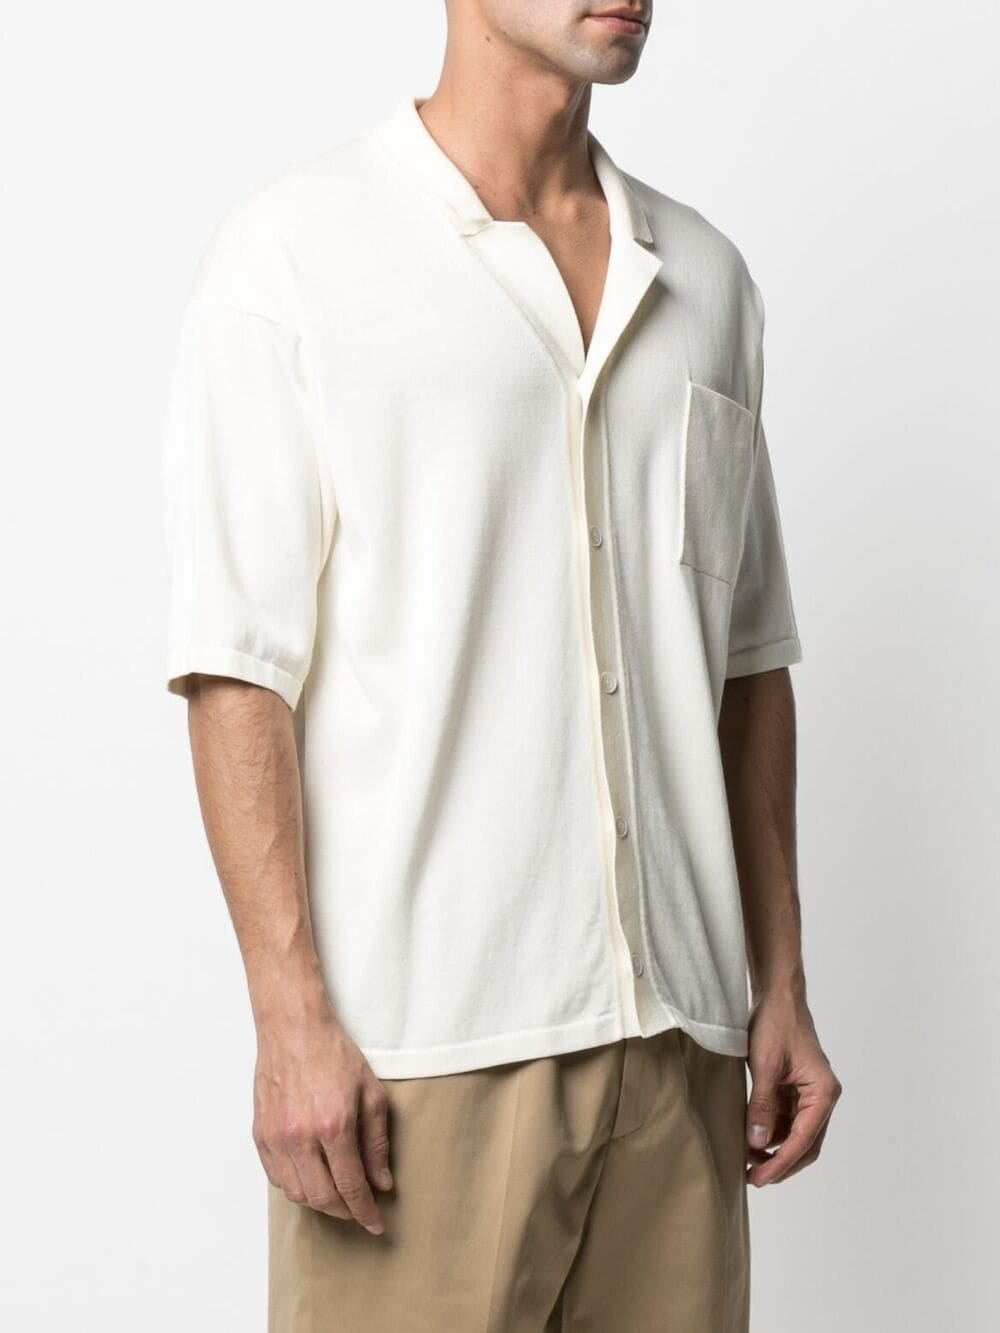 Katte white cotton notched-collar short-sleeve shirt  ROBERTO COLLINA |  | RE1112502